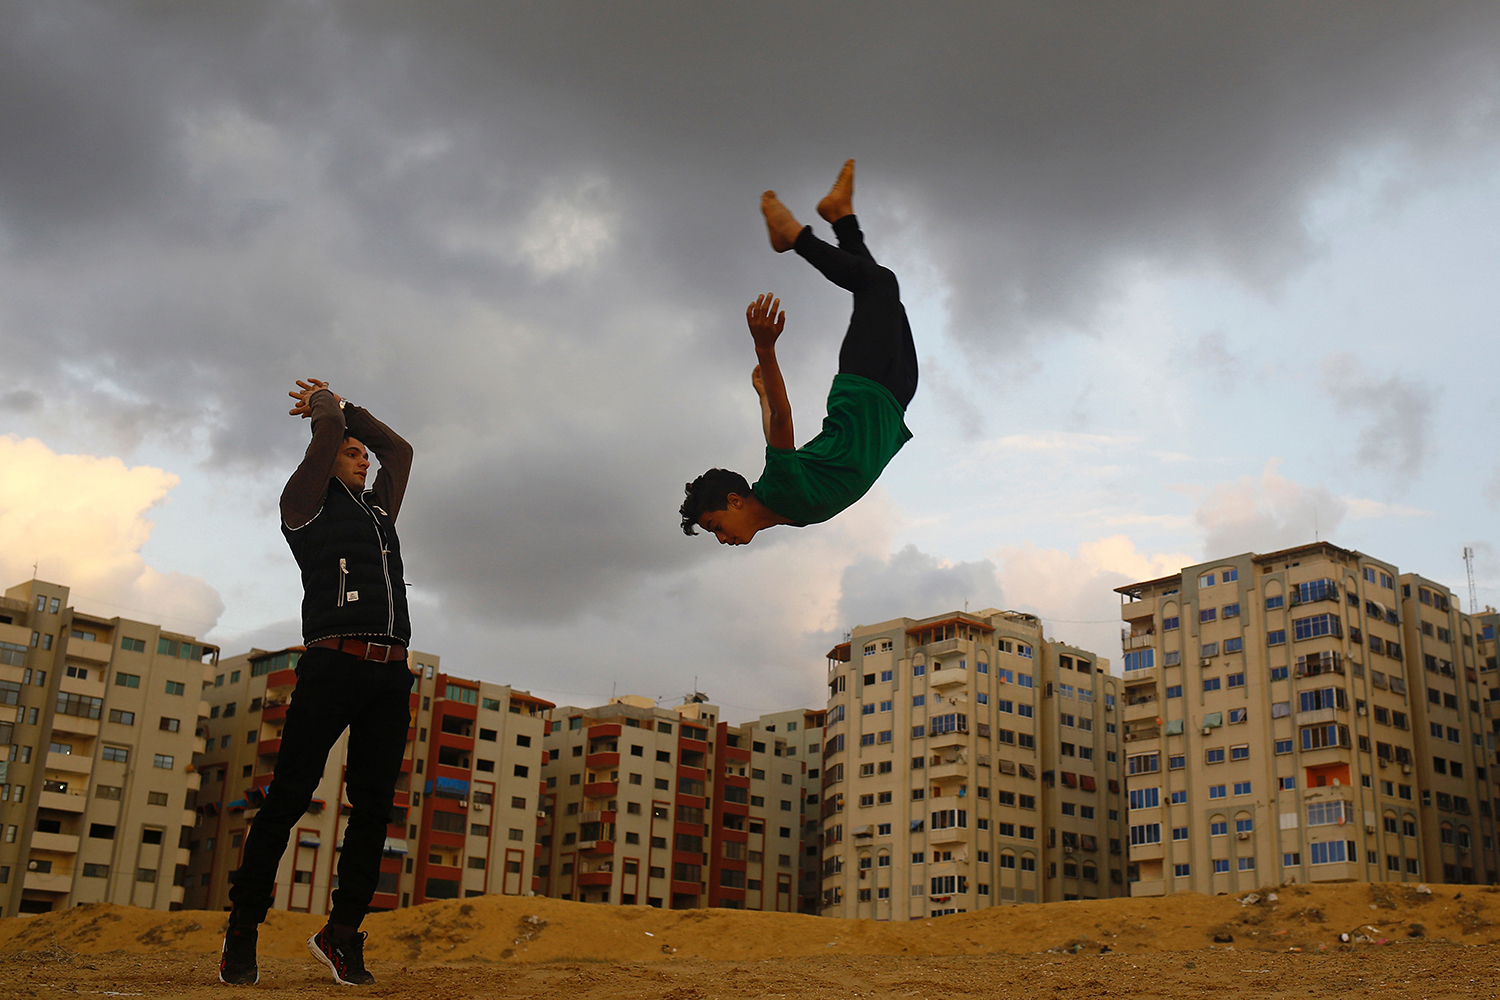 TOPSHOT - Palestinian youths from Gaza's Free Parkour team, practice their Parkour skills in Gaza City on December 16, 2016. / AFP PHOTO / MOHAMMED ABED / TT / kod 444